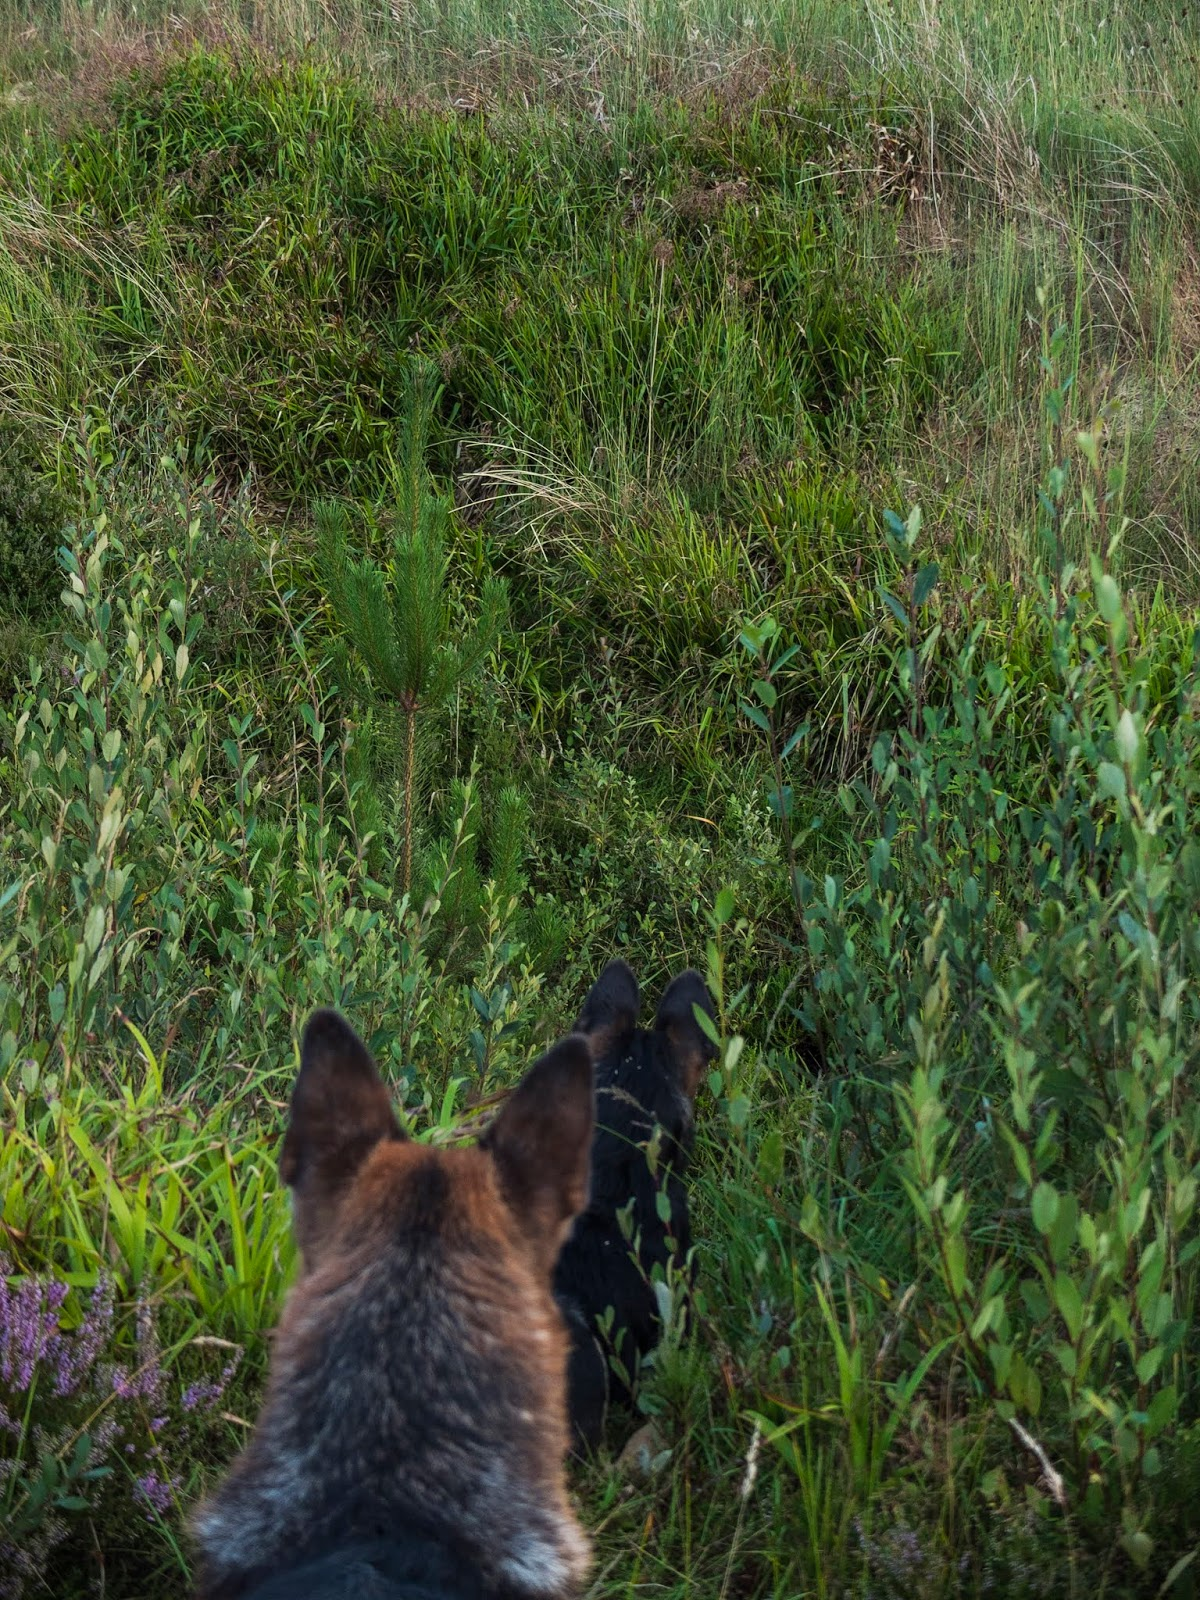 A German Shepherd with a puppy looking for mum in long grass.